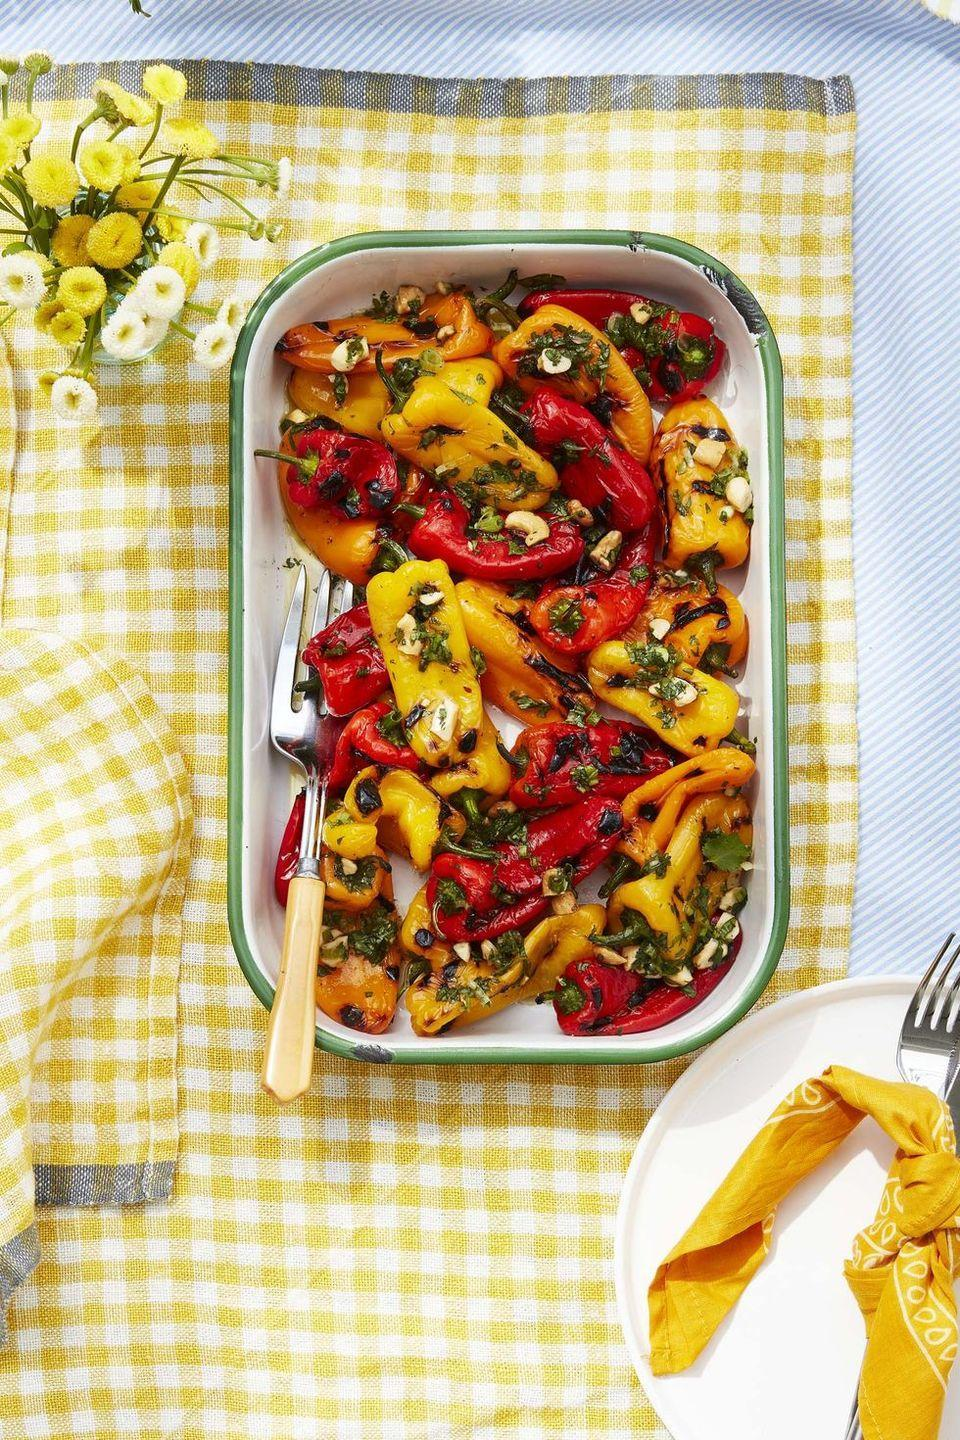 "<p>Charred peppers are a special treat: The heat caramelizes the sugars in the pepper, making them taste uniquely rich. But don't sleep on this delicious, nutty, vinaigrette!</p><p><strong><a href=""https://www.countryliving.com/food-drinks/a32353796/charred-baby-peppers-with-lime-and-cashew-vinaigrette/"" rel=""nofollow noopener"" target=""_blank"" data-ylk=""slk:Get the recipe"" class=""link rapid-noclick-resp"">Get the recipe</a>.</strong></p><p><strong><a class=""link rapid-noclick-resp"" href=""https://www.amazon.com/Weber-Original-Premium-Charcoal-22-Inch/dp/B00MKB5TXA/?tag=syn-yahoo-20&ascsubtag=%5Bartid%7C10050.g.3814%5Bsrc%7Cyahoo-us"" rel=""nofollow noopener"" target=""_blank"" data-ylk=""slk:SHOP GRILLS"">SHOP GRILLS</a><br></strong></p>"